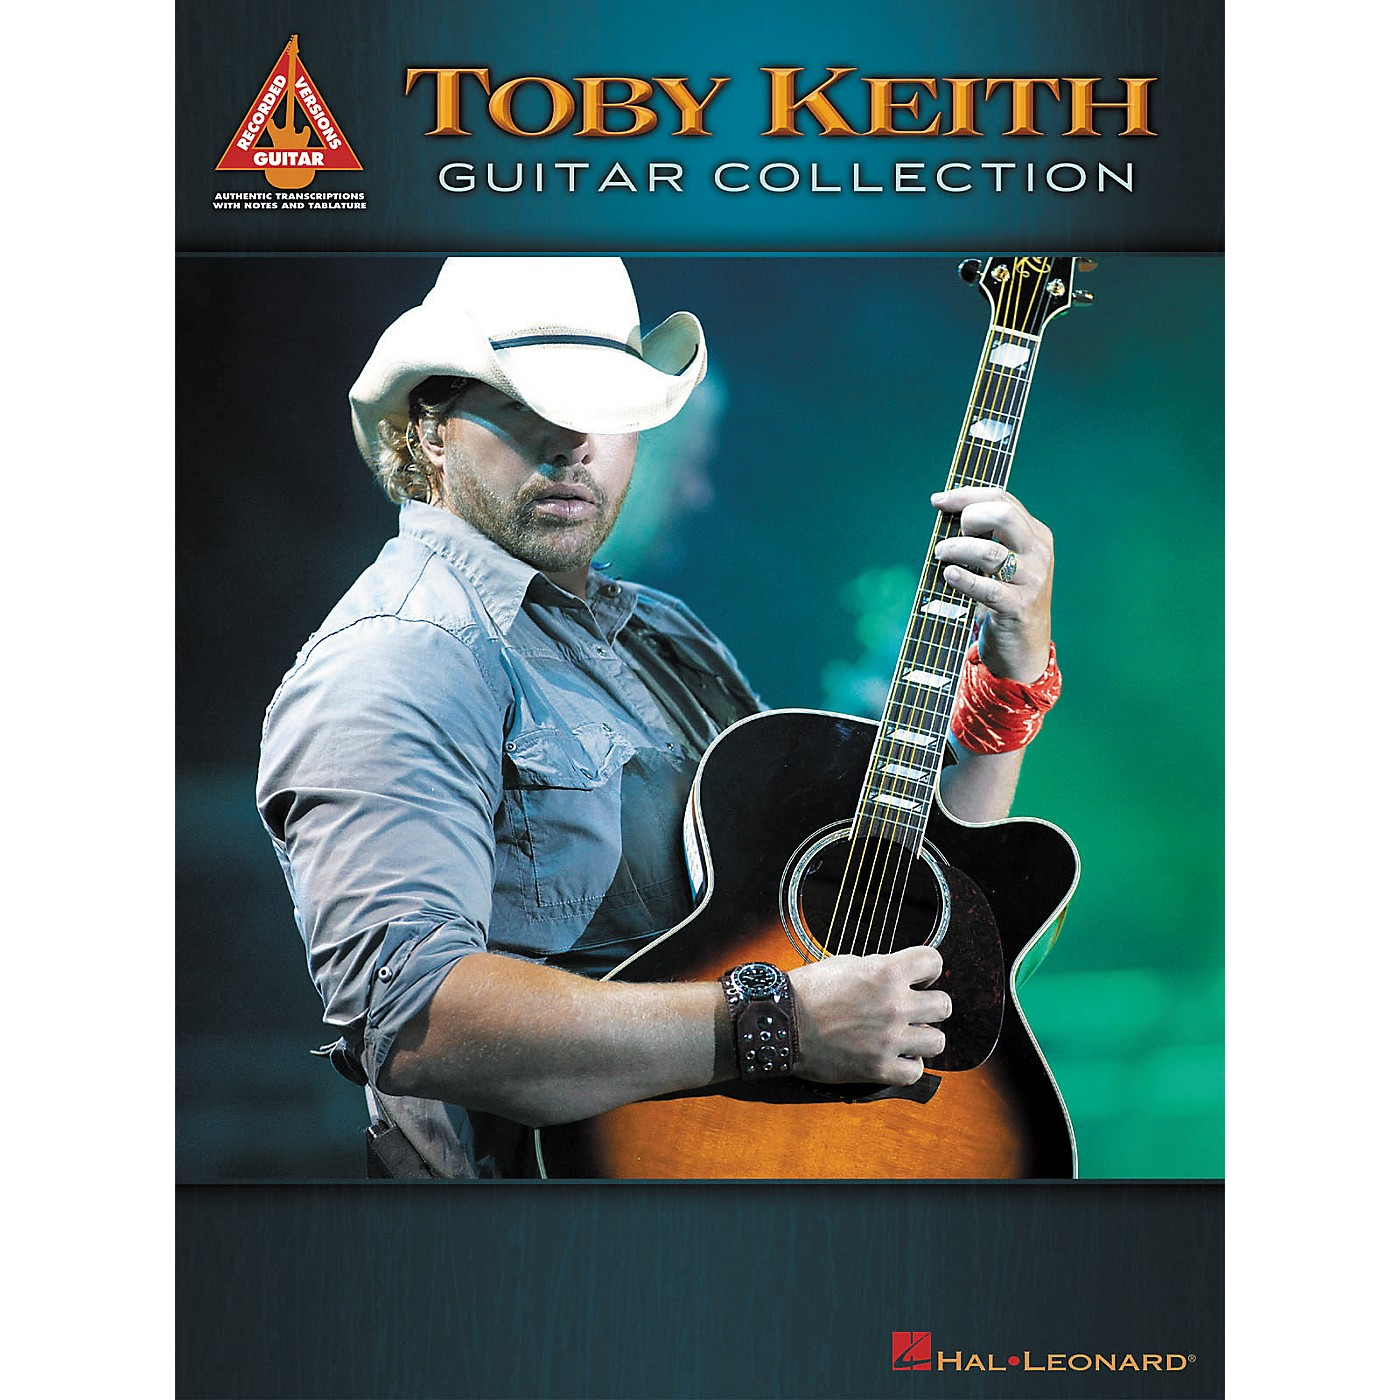 Hal Leonard Toby Keith Guitar Collection - Guitar Recorded Versions Songbook thumbnail